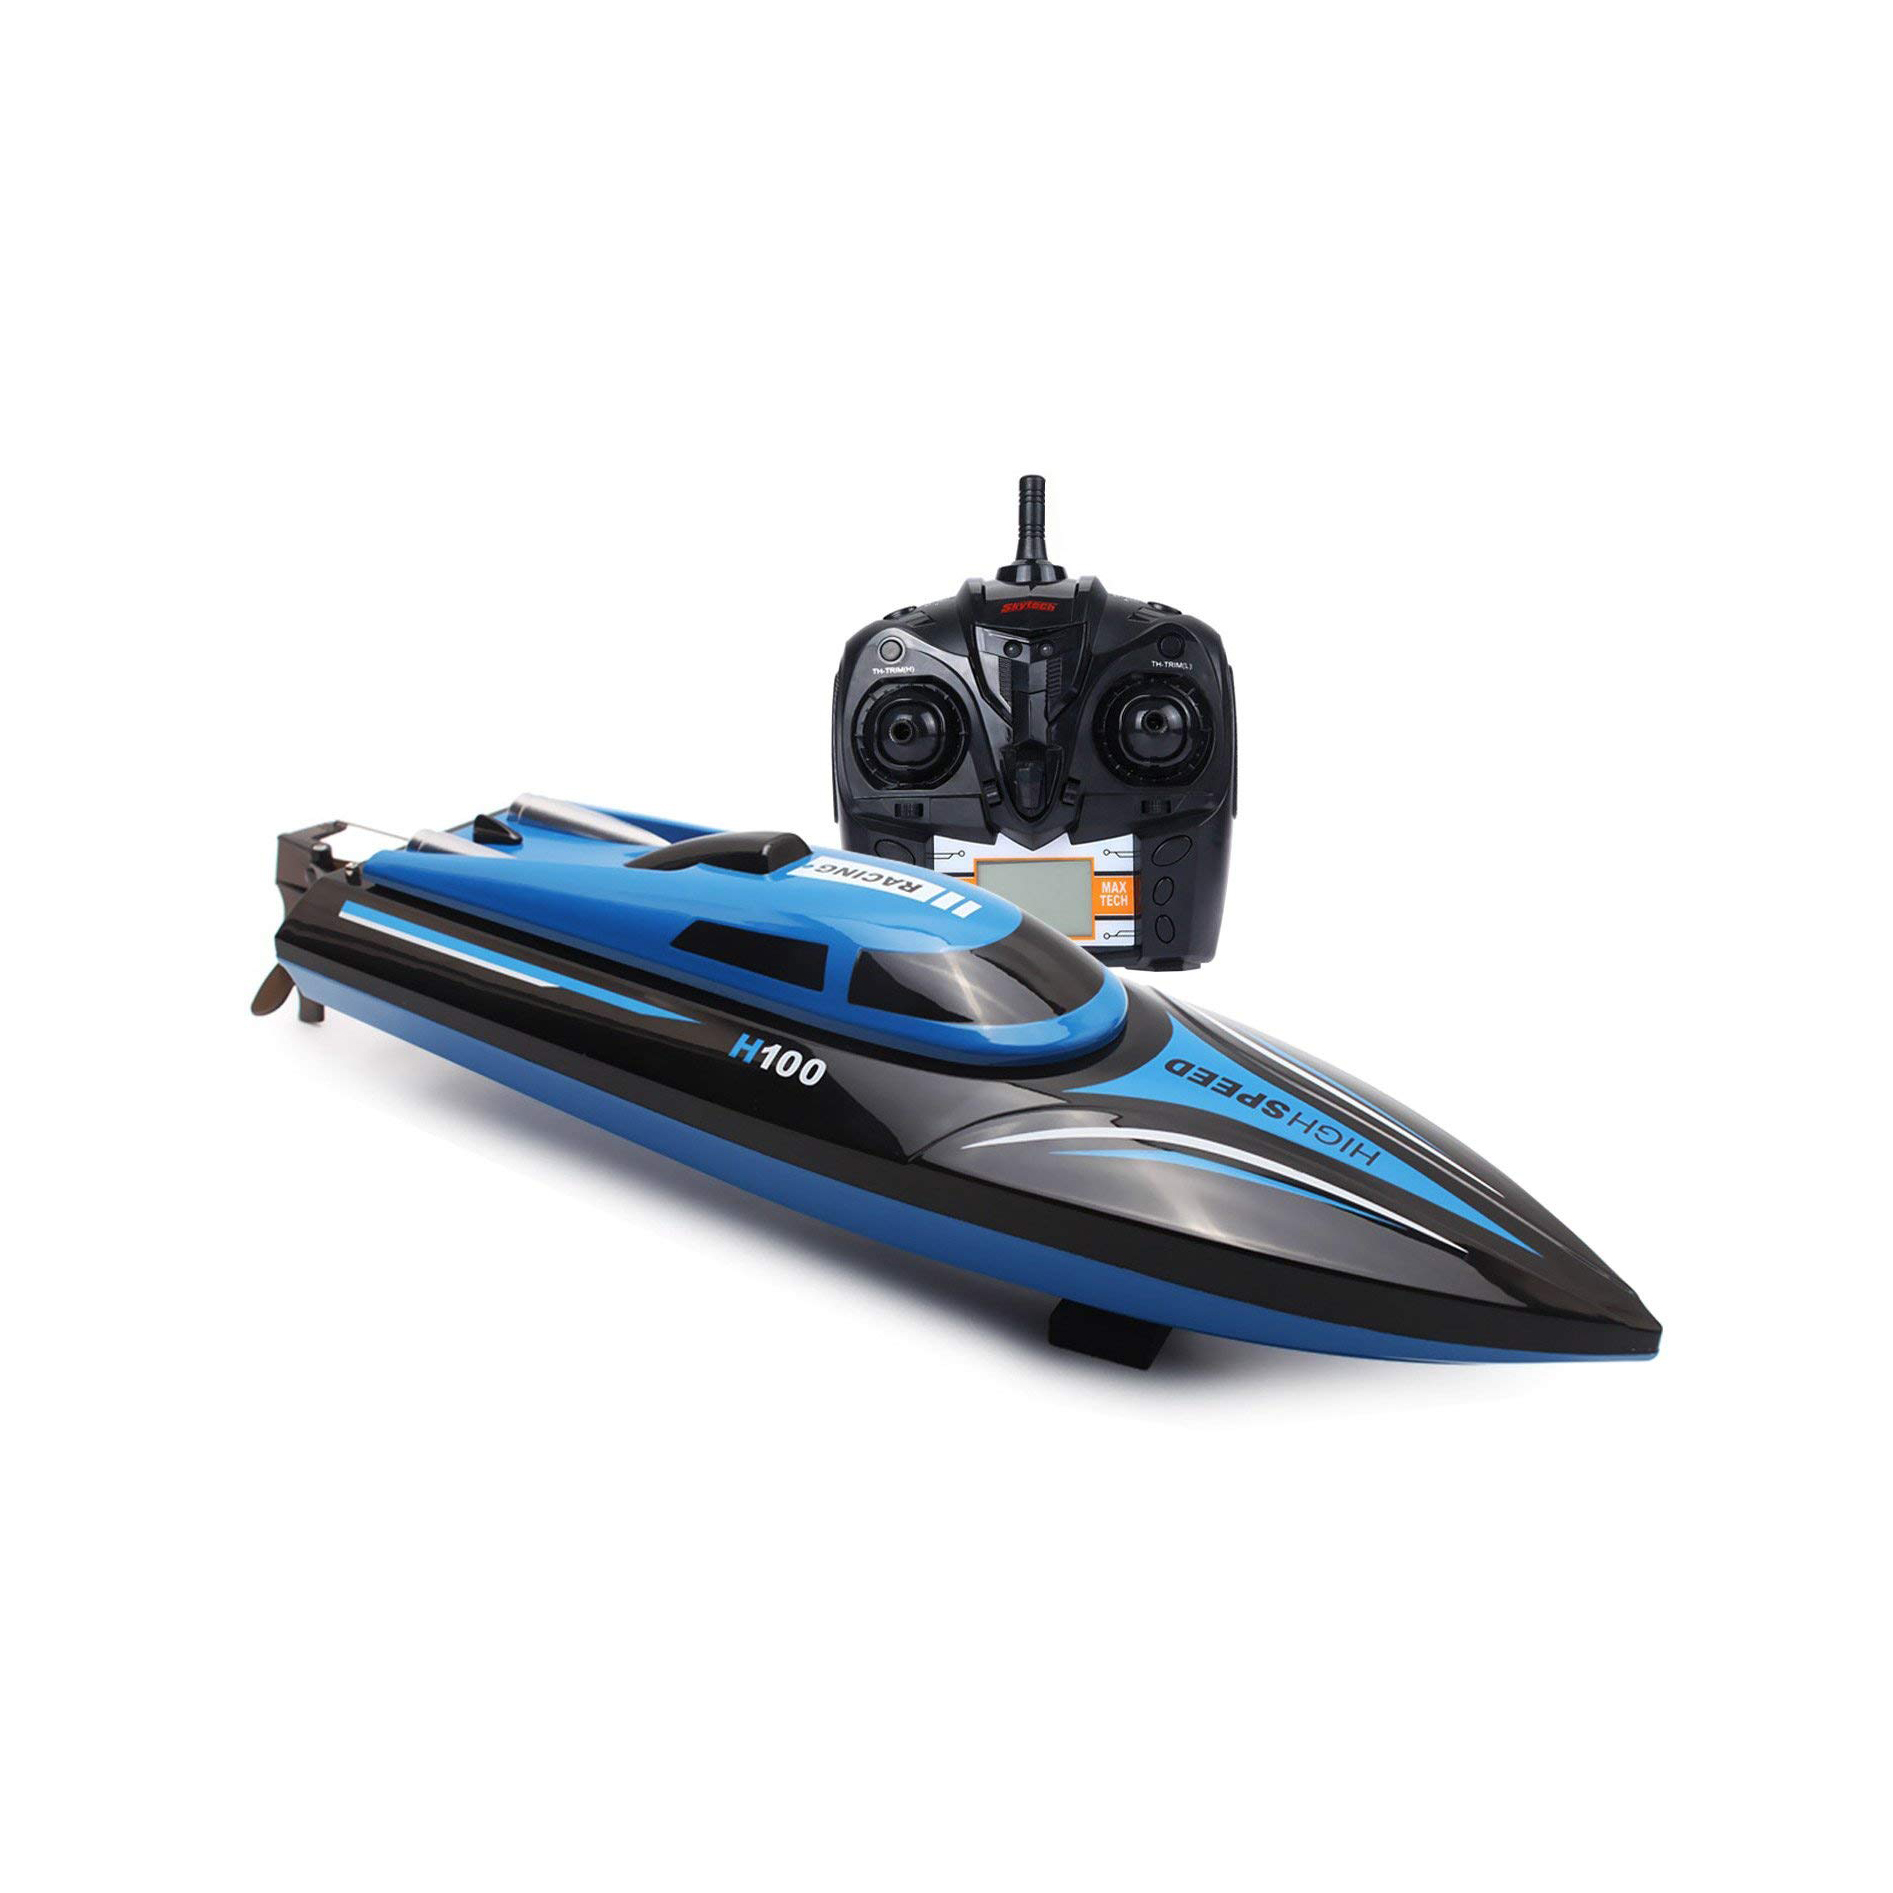 2.4GHz Electric RC Boat 4 Channels Remote Control Racing Boat 25KM//H High Speed